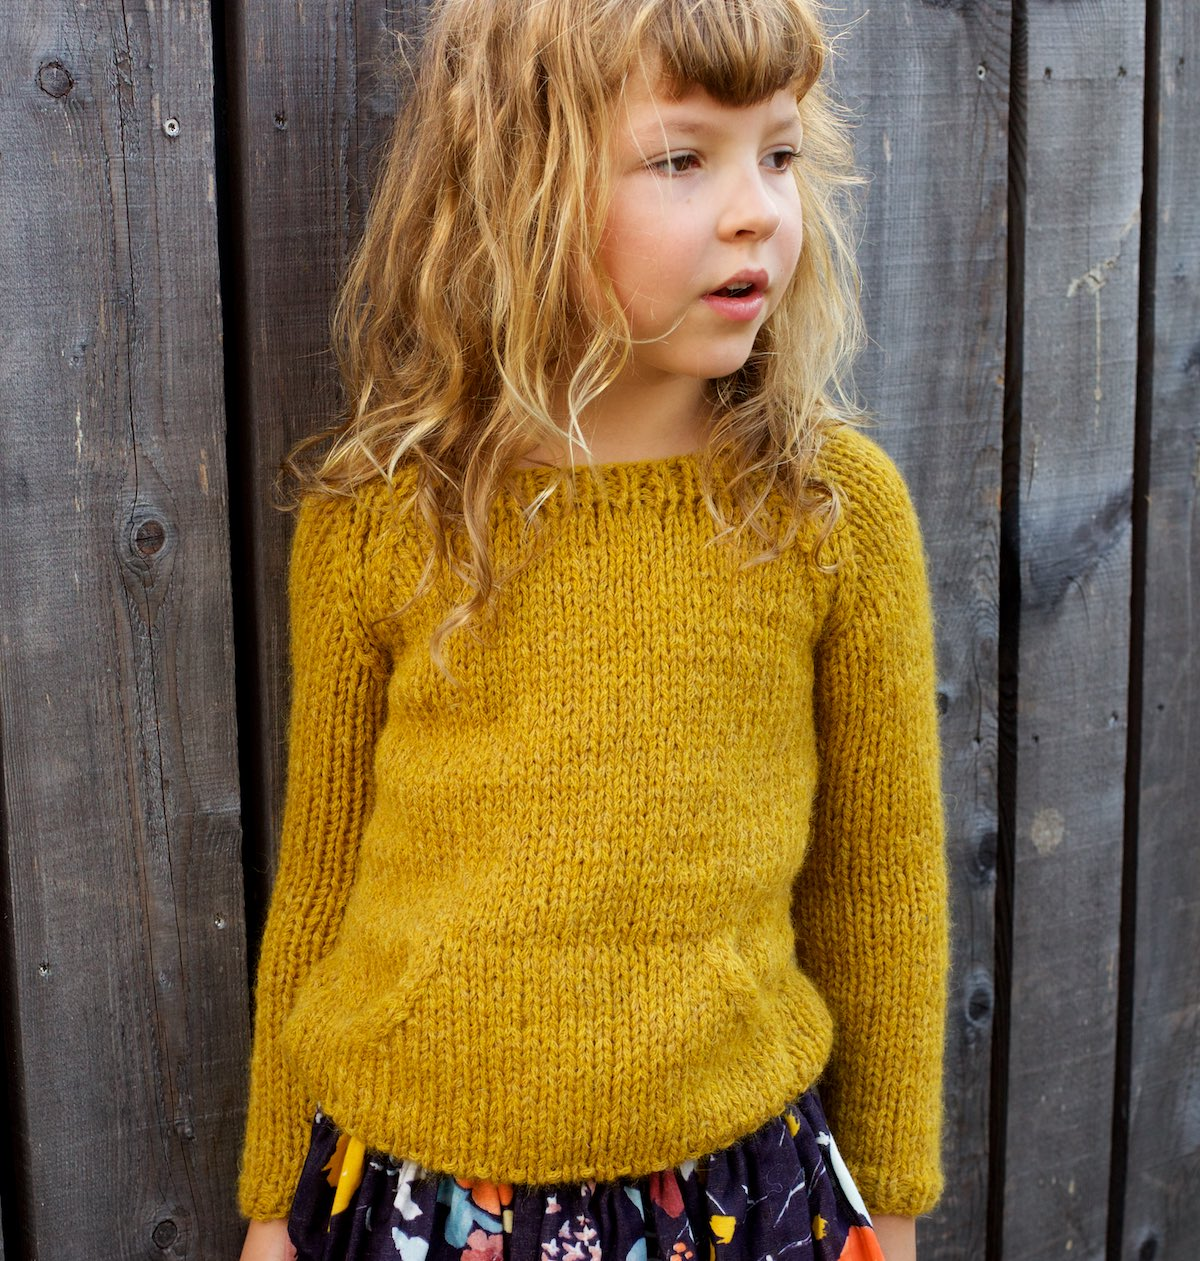 Quokka Sweater Knitting Pattern For Kids Compagnie M